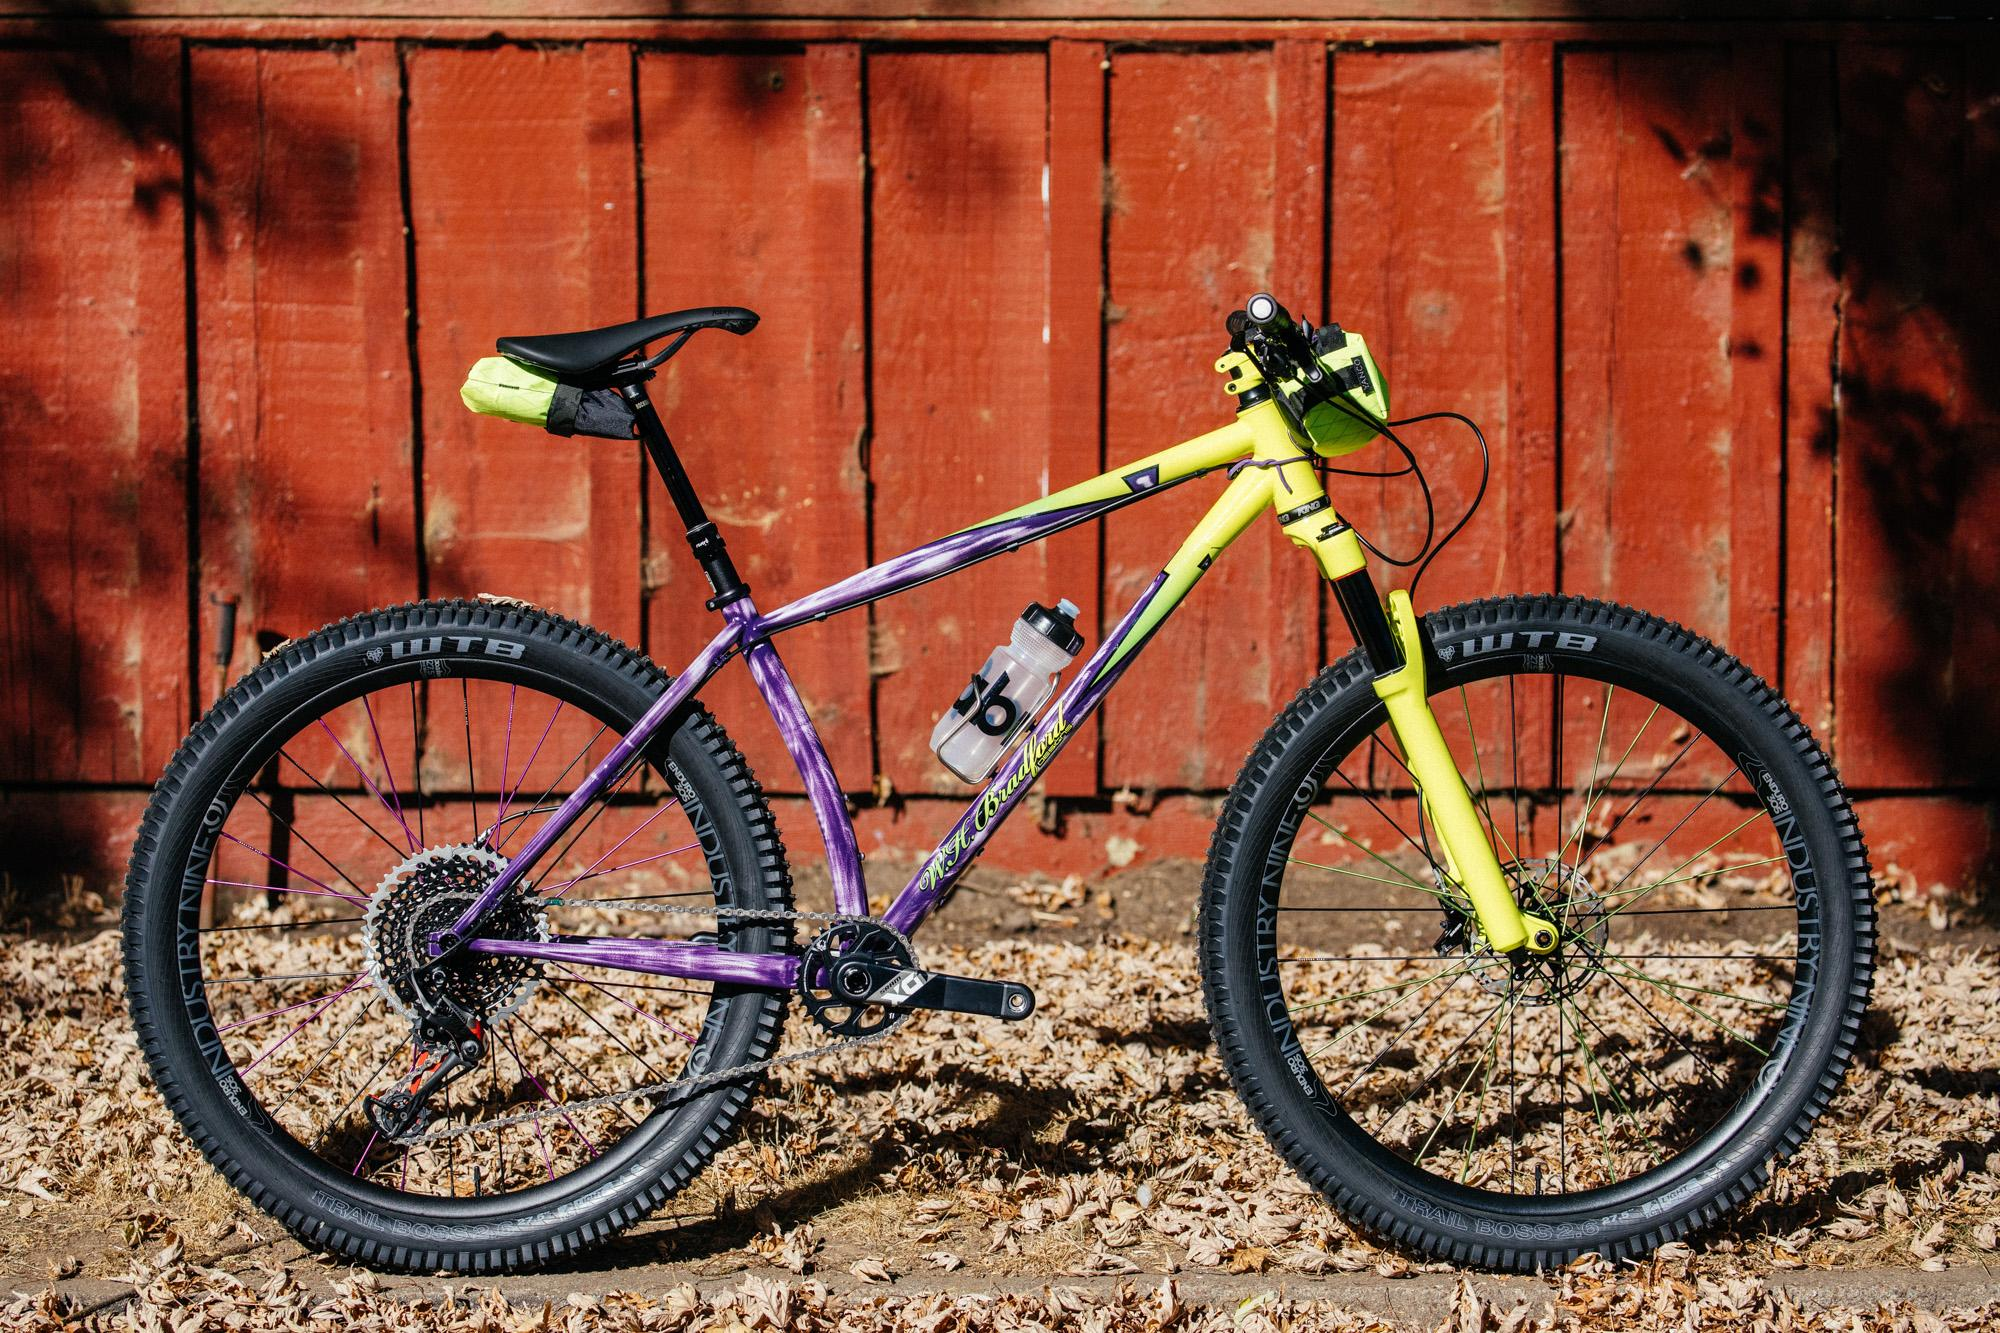 2018 Grinduro: W.H. Bradford Mountain of Radness Fluoro Hardtail